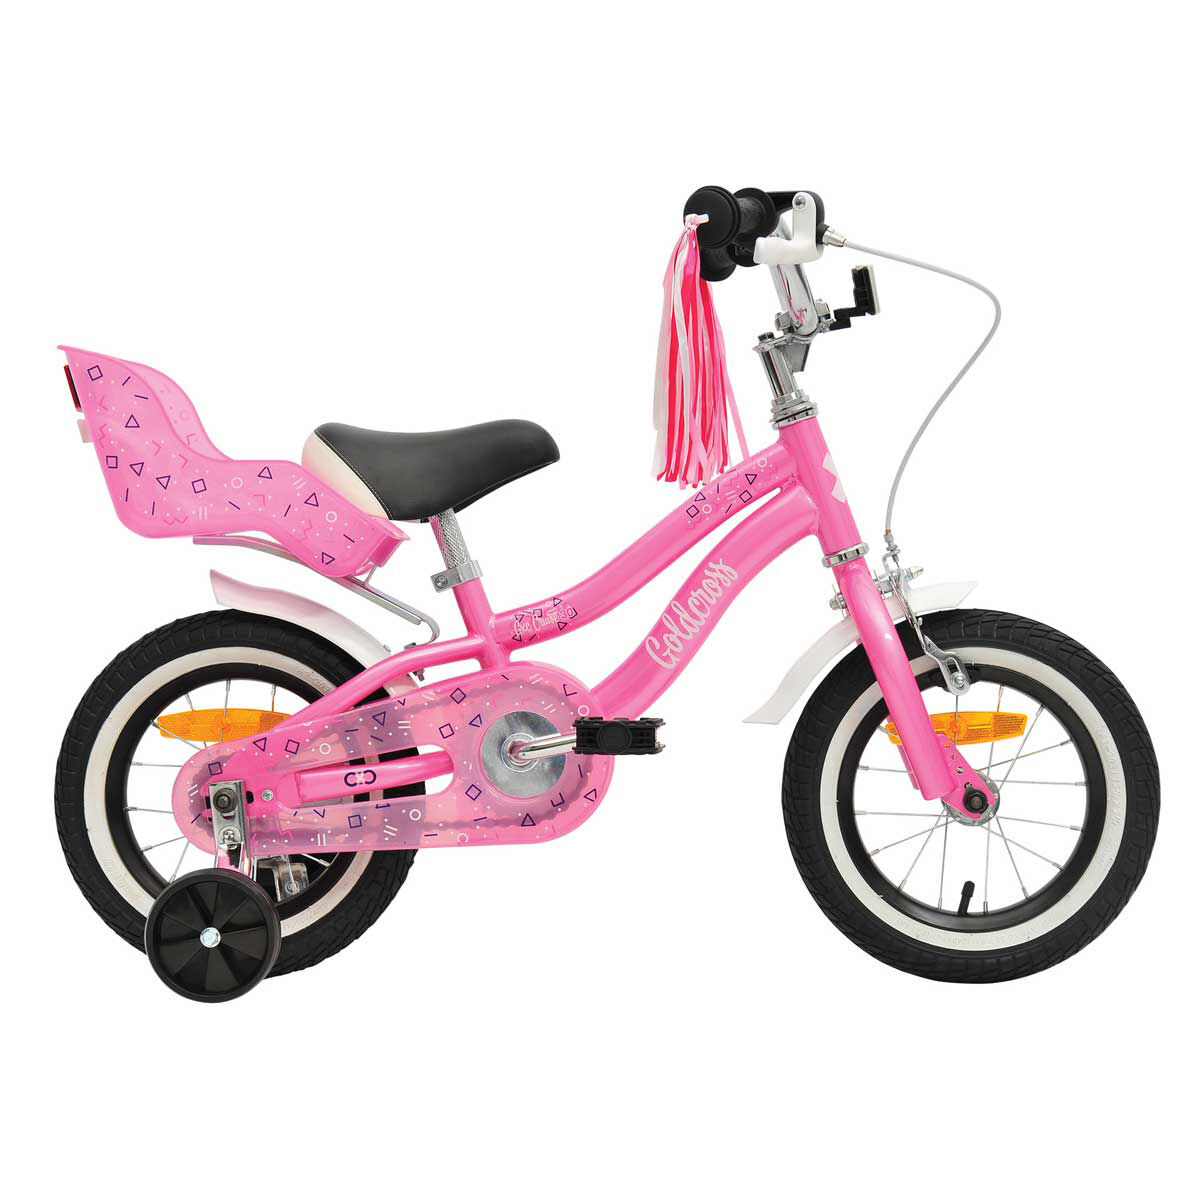 Pink Stars Bikes-Up Kids Bicycle Toy Doll Seat Carrier